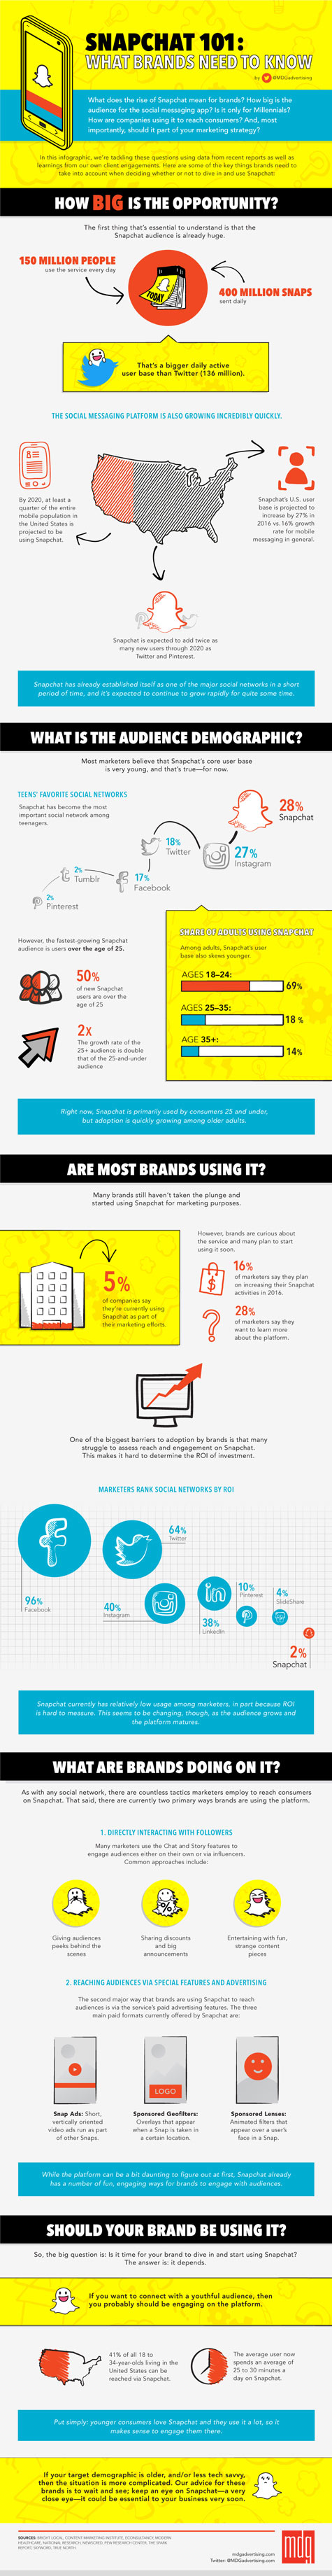 Original post:http://www.socialmediatoday.com/social-business/snapchat-101-what-brands-need-know-infographic